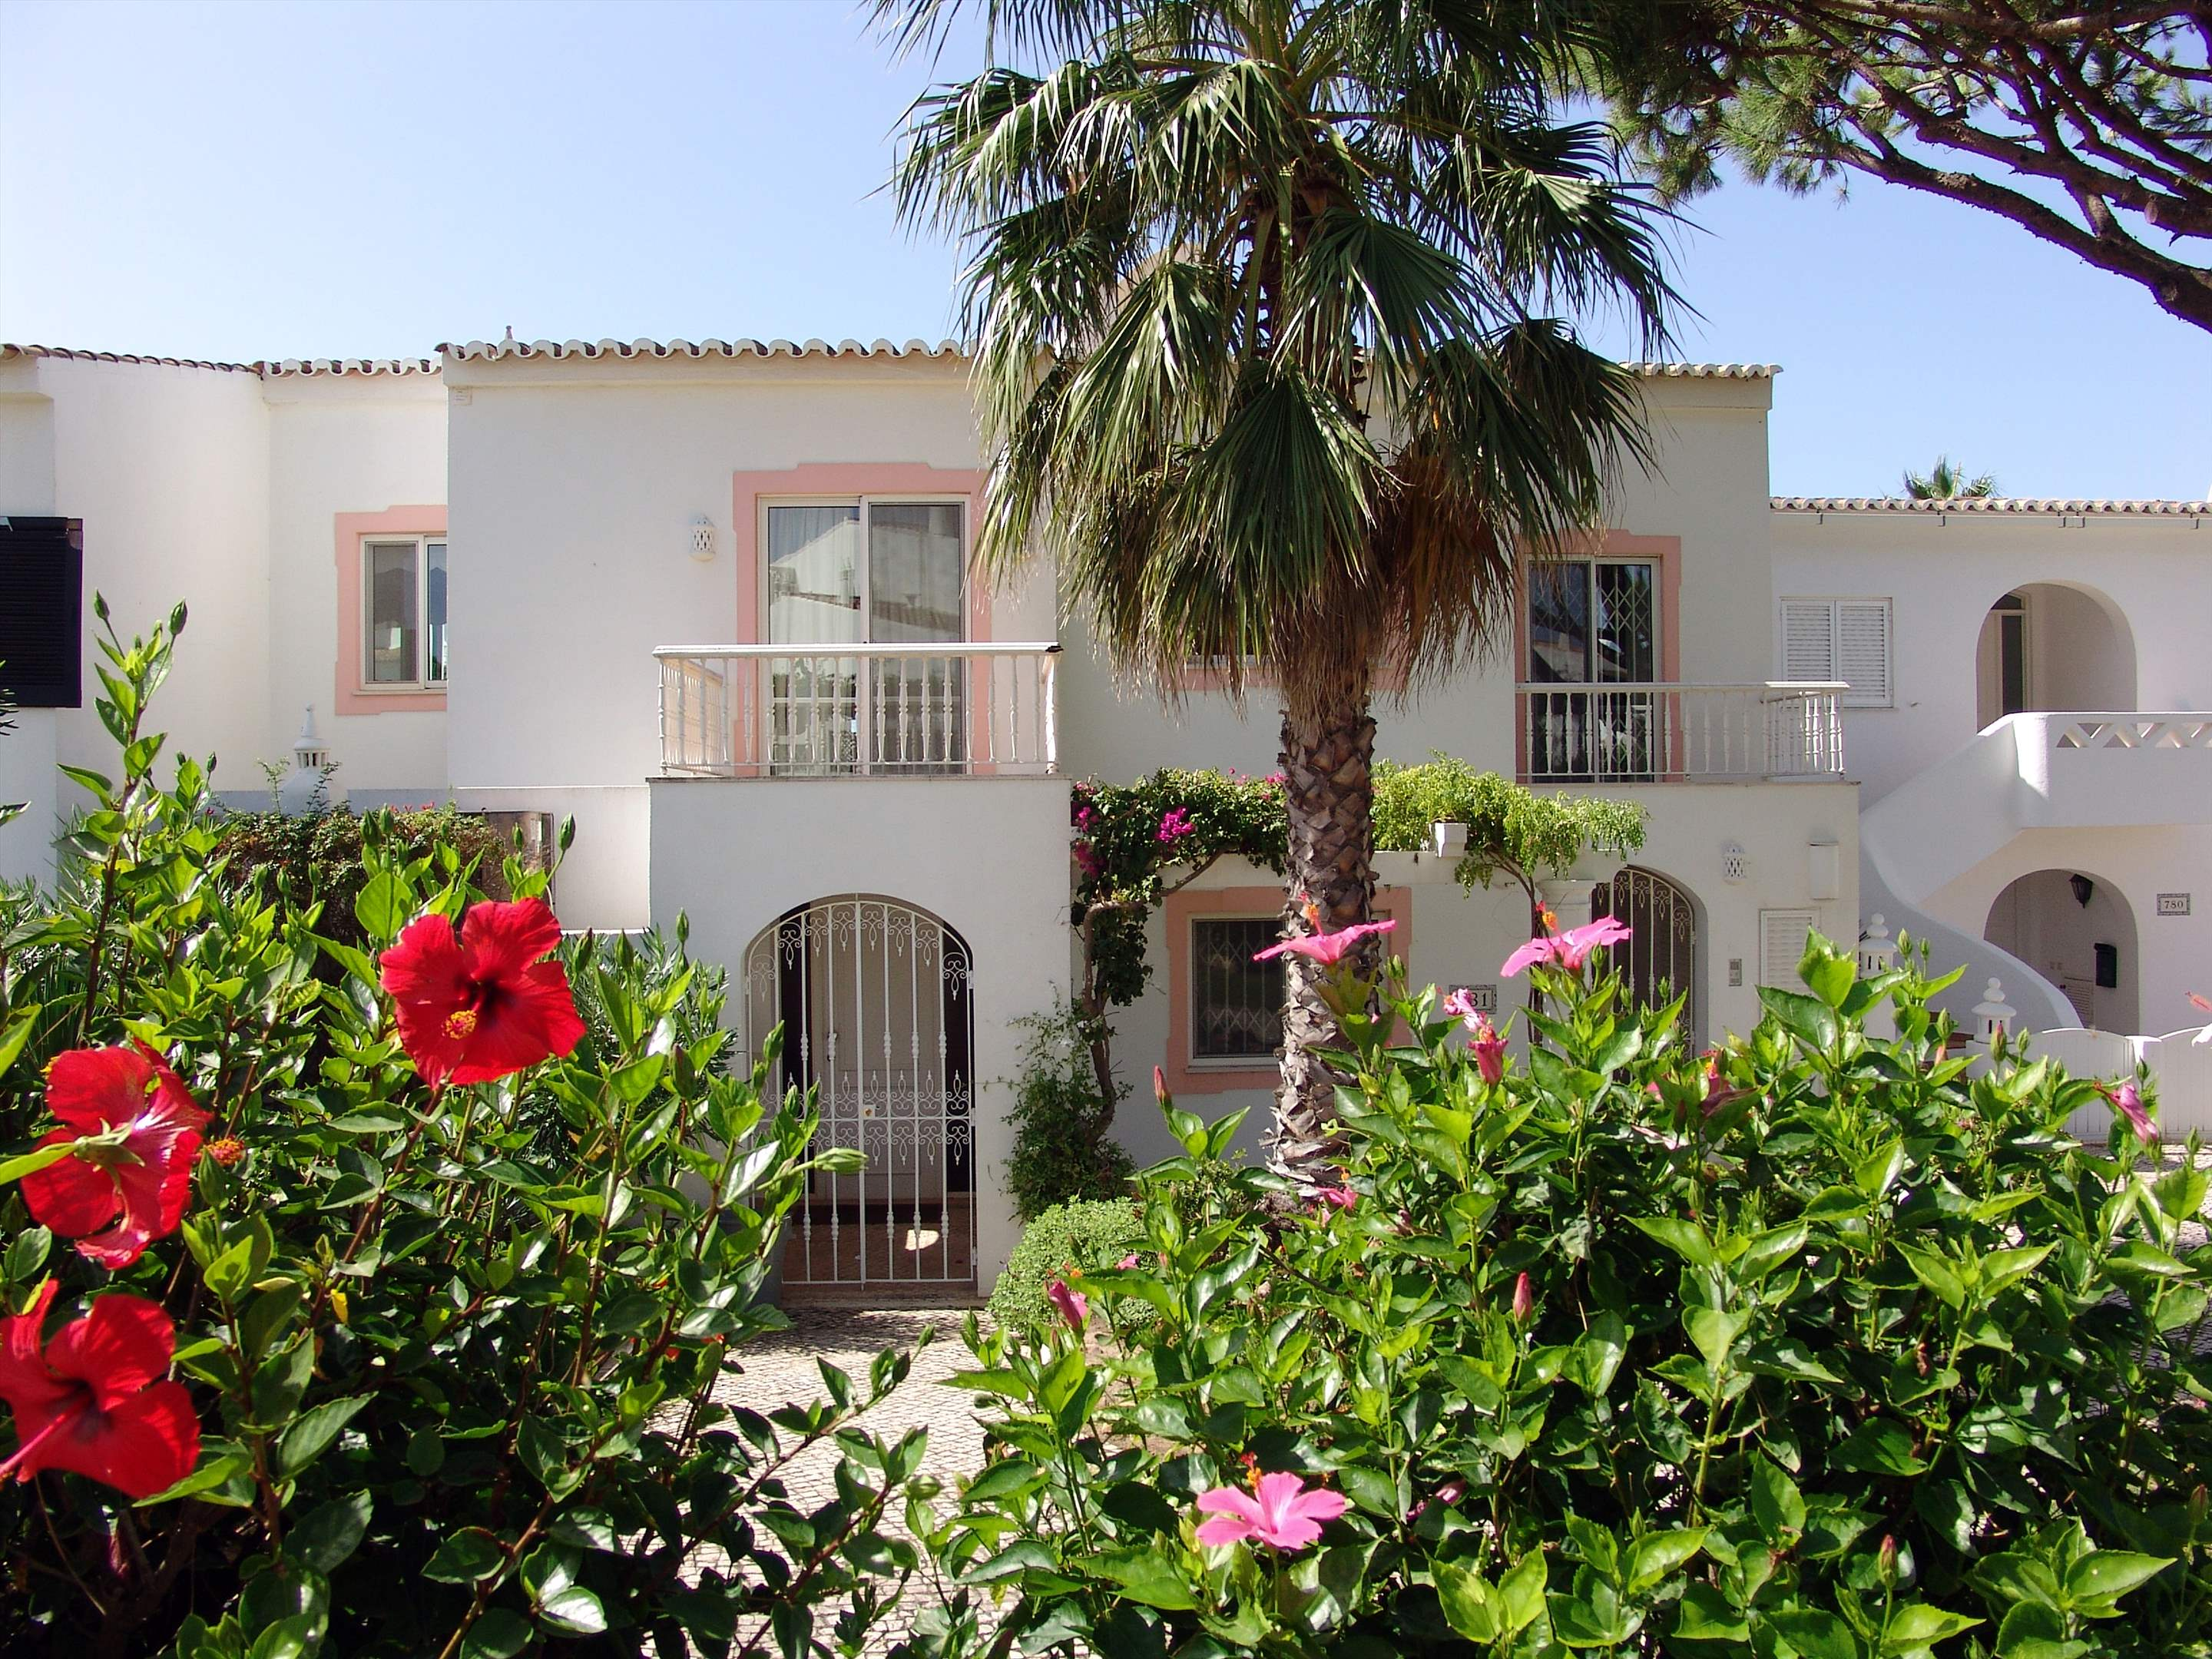 Villas Louisa, 4 Bedroom, 4 bedroom villa in Vale do Lobo, Algarve Photo #13